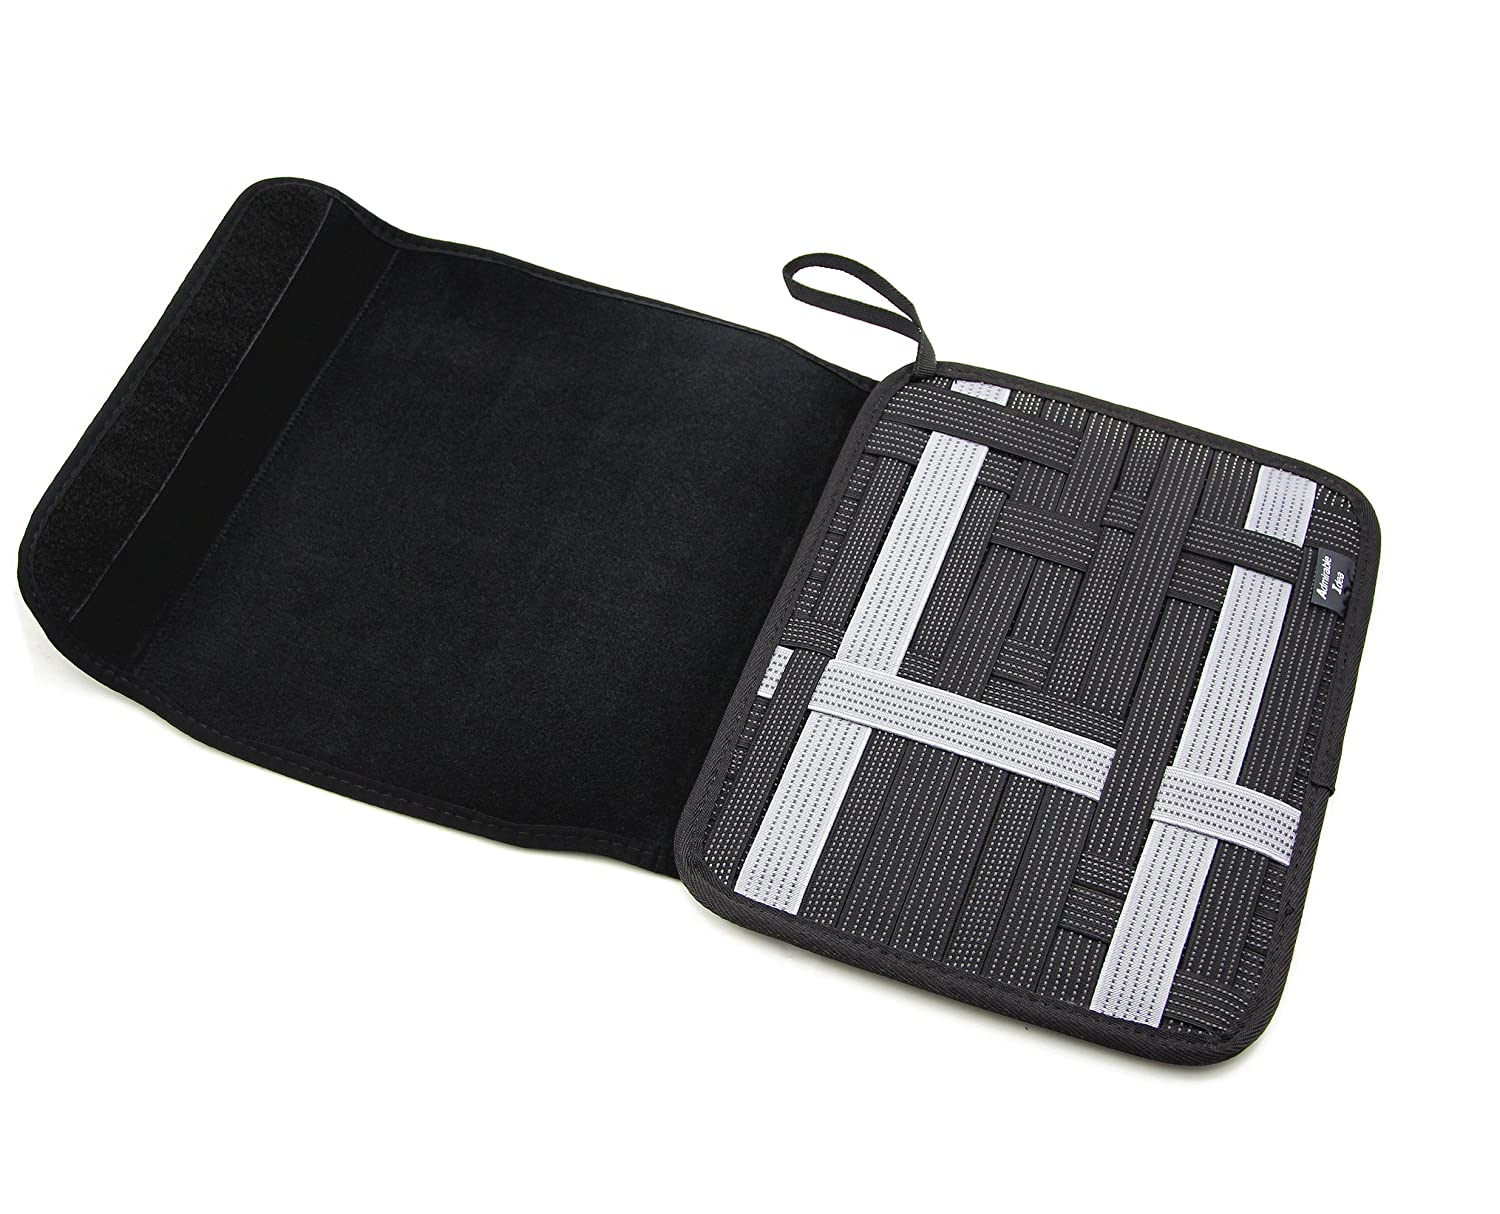 480ab3890838 Admirable Idea Travel Cable Organizer Board with iPad Bag Tablet ...